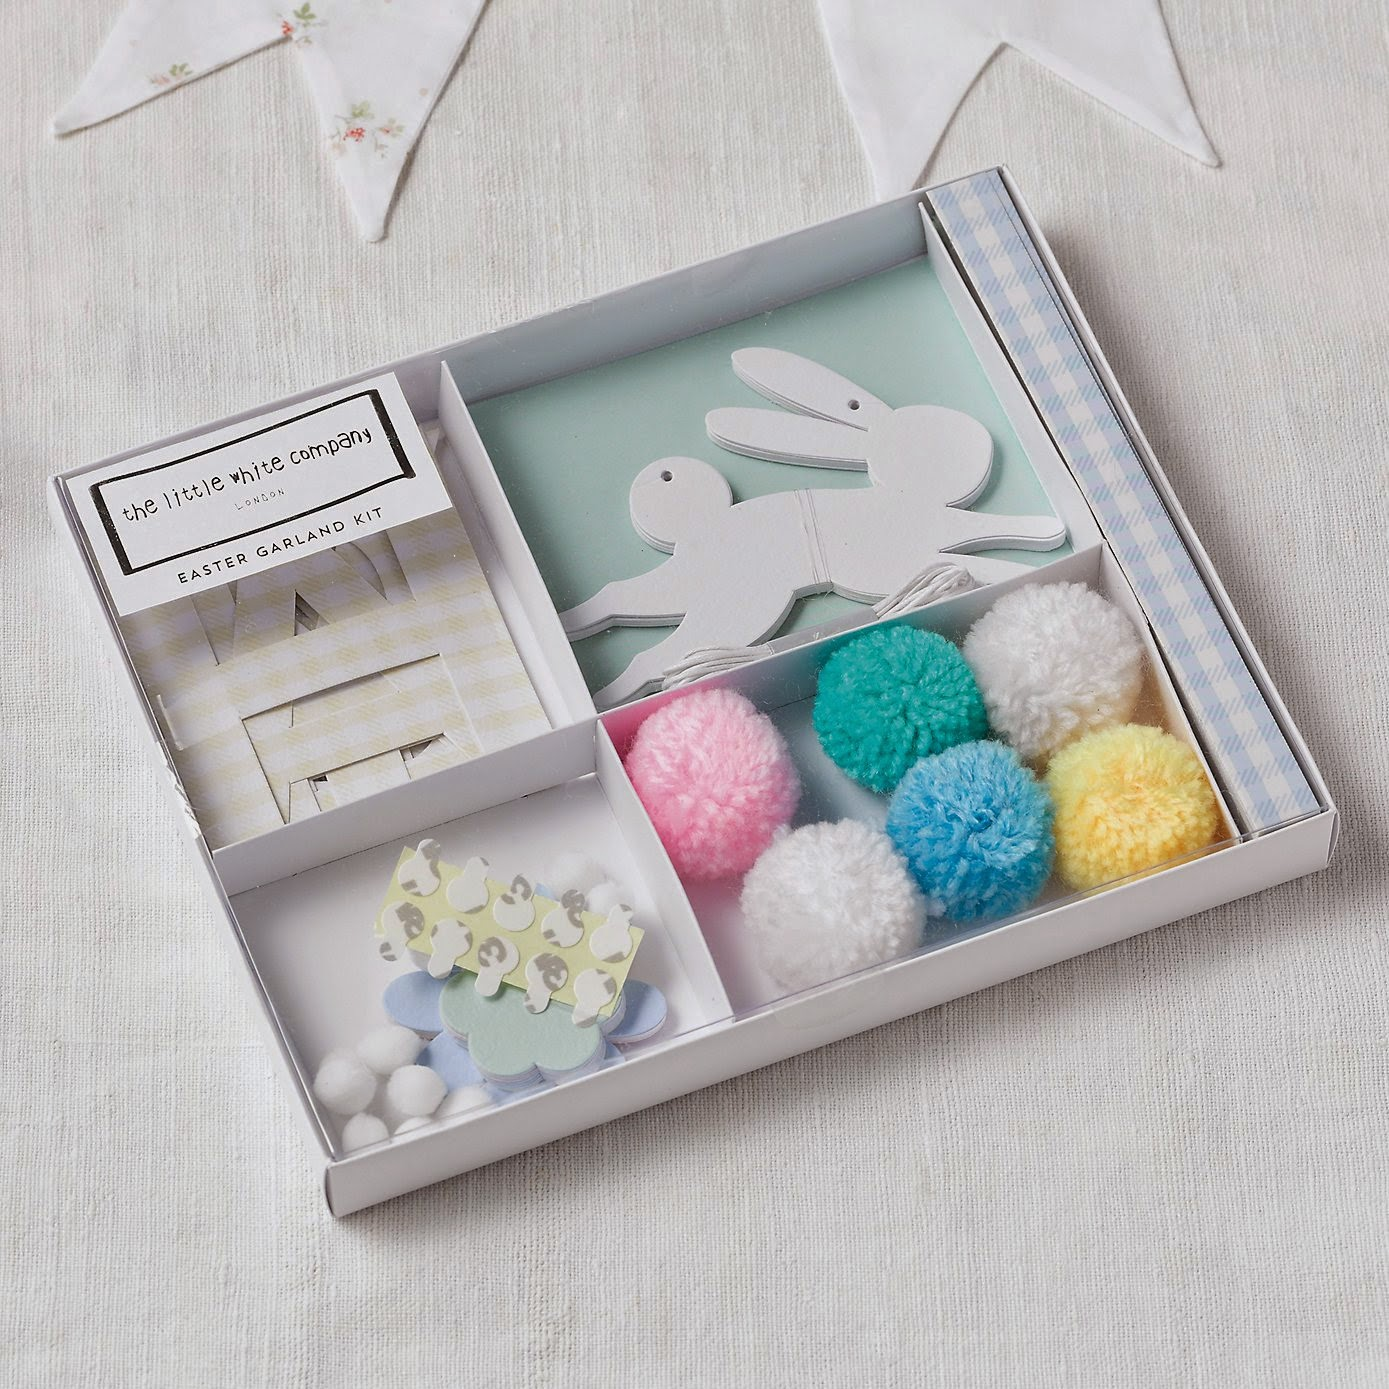 mamasVIB | V. I. BUSY BEES: 5 Egg-tra Easy Easter crafts you can do with the kids - no DIY involved! | easter  crafts | eater crafts | easter cards | kids crafts | crafts to buy | quick easter crafts | diy | shop brought | pinterest | easter pinterest board | cards | eggs | decorate |